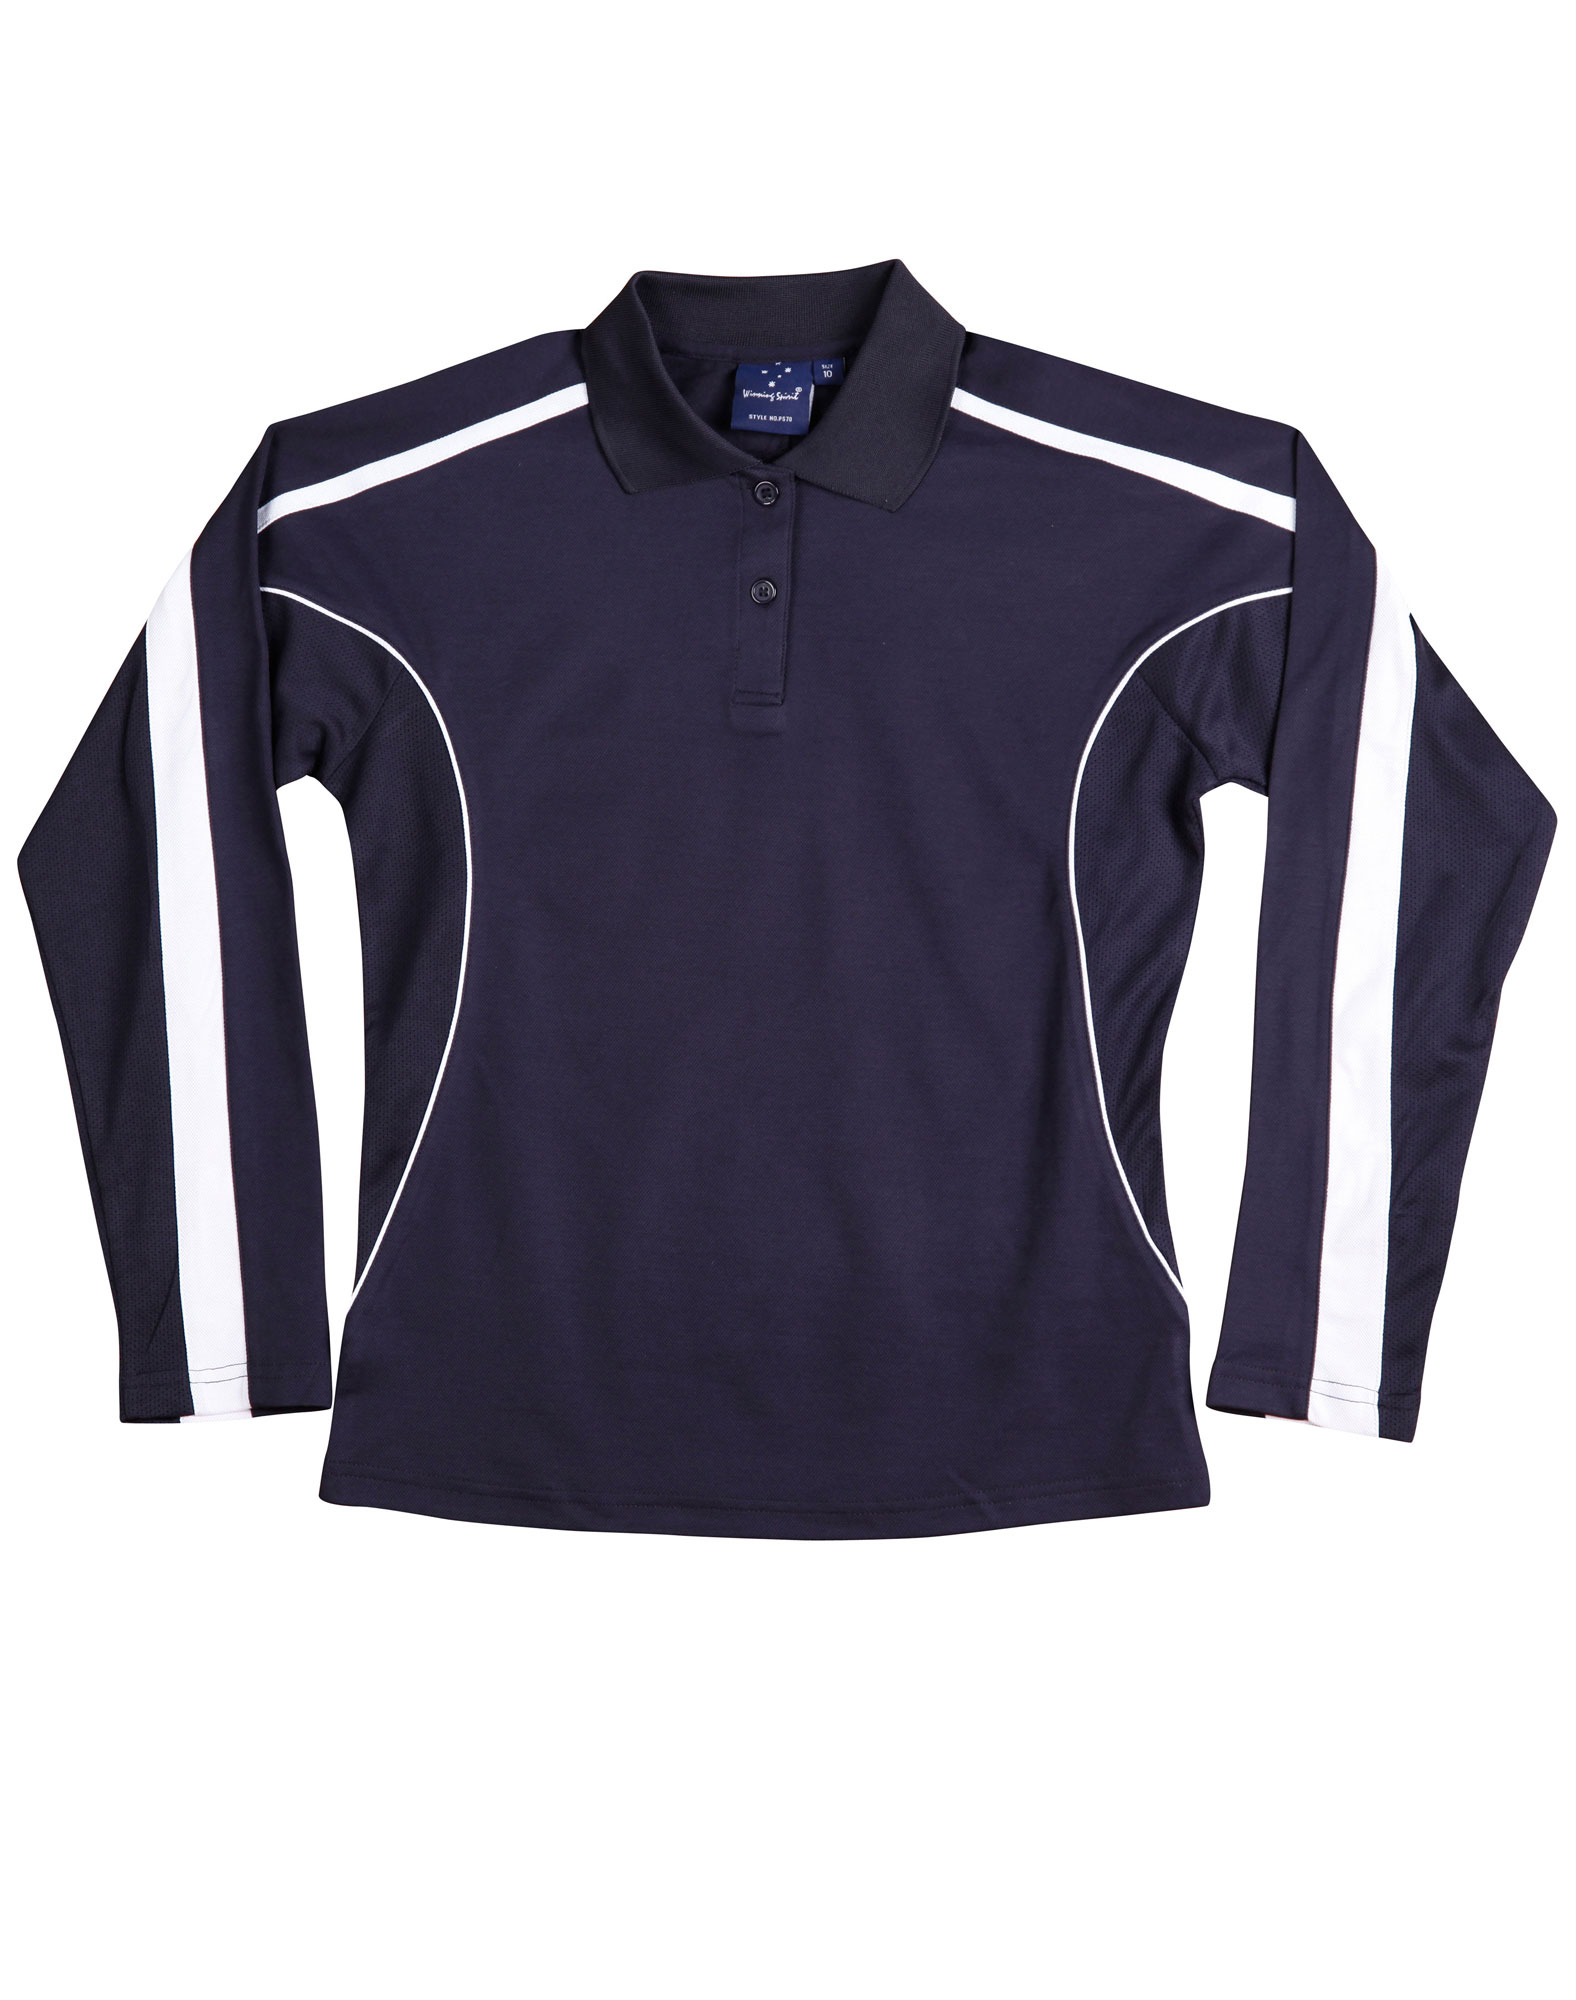 KDARC Long Sleeve Polo